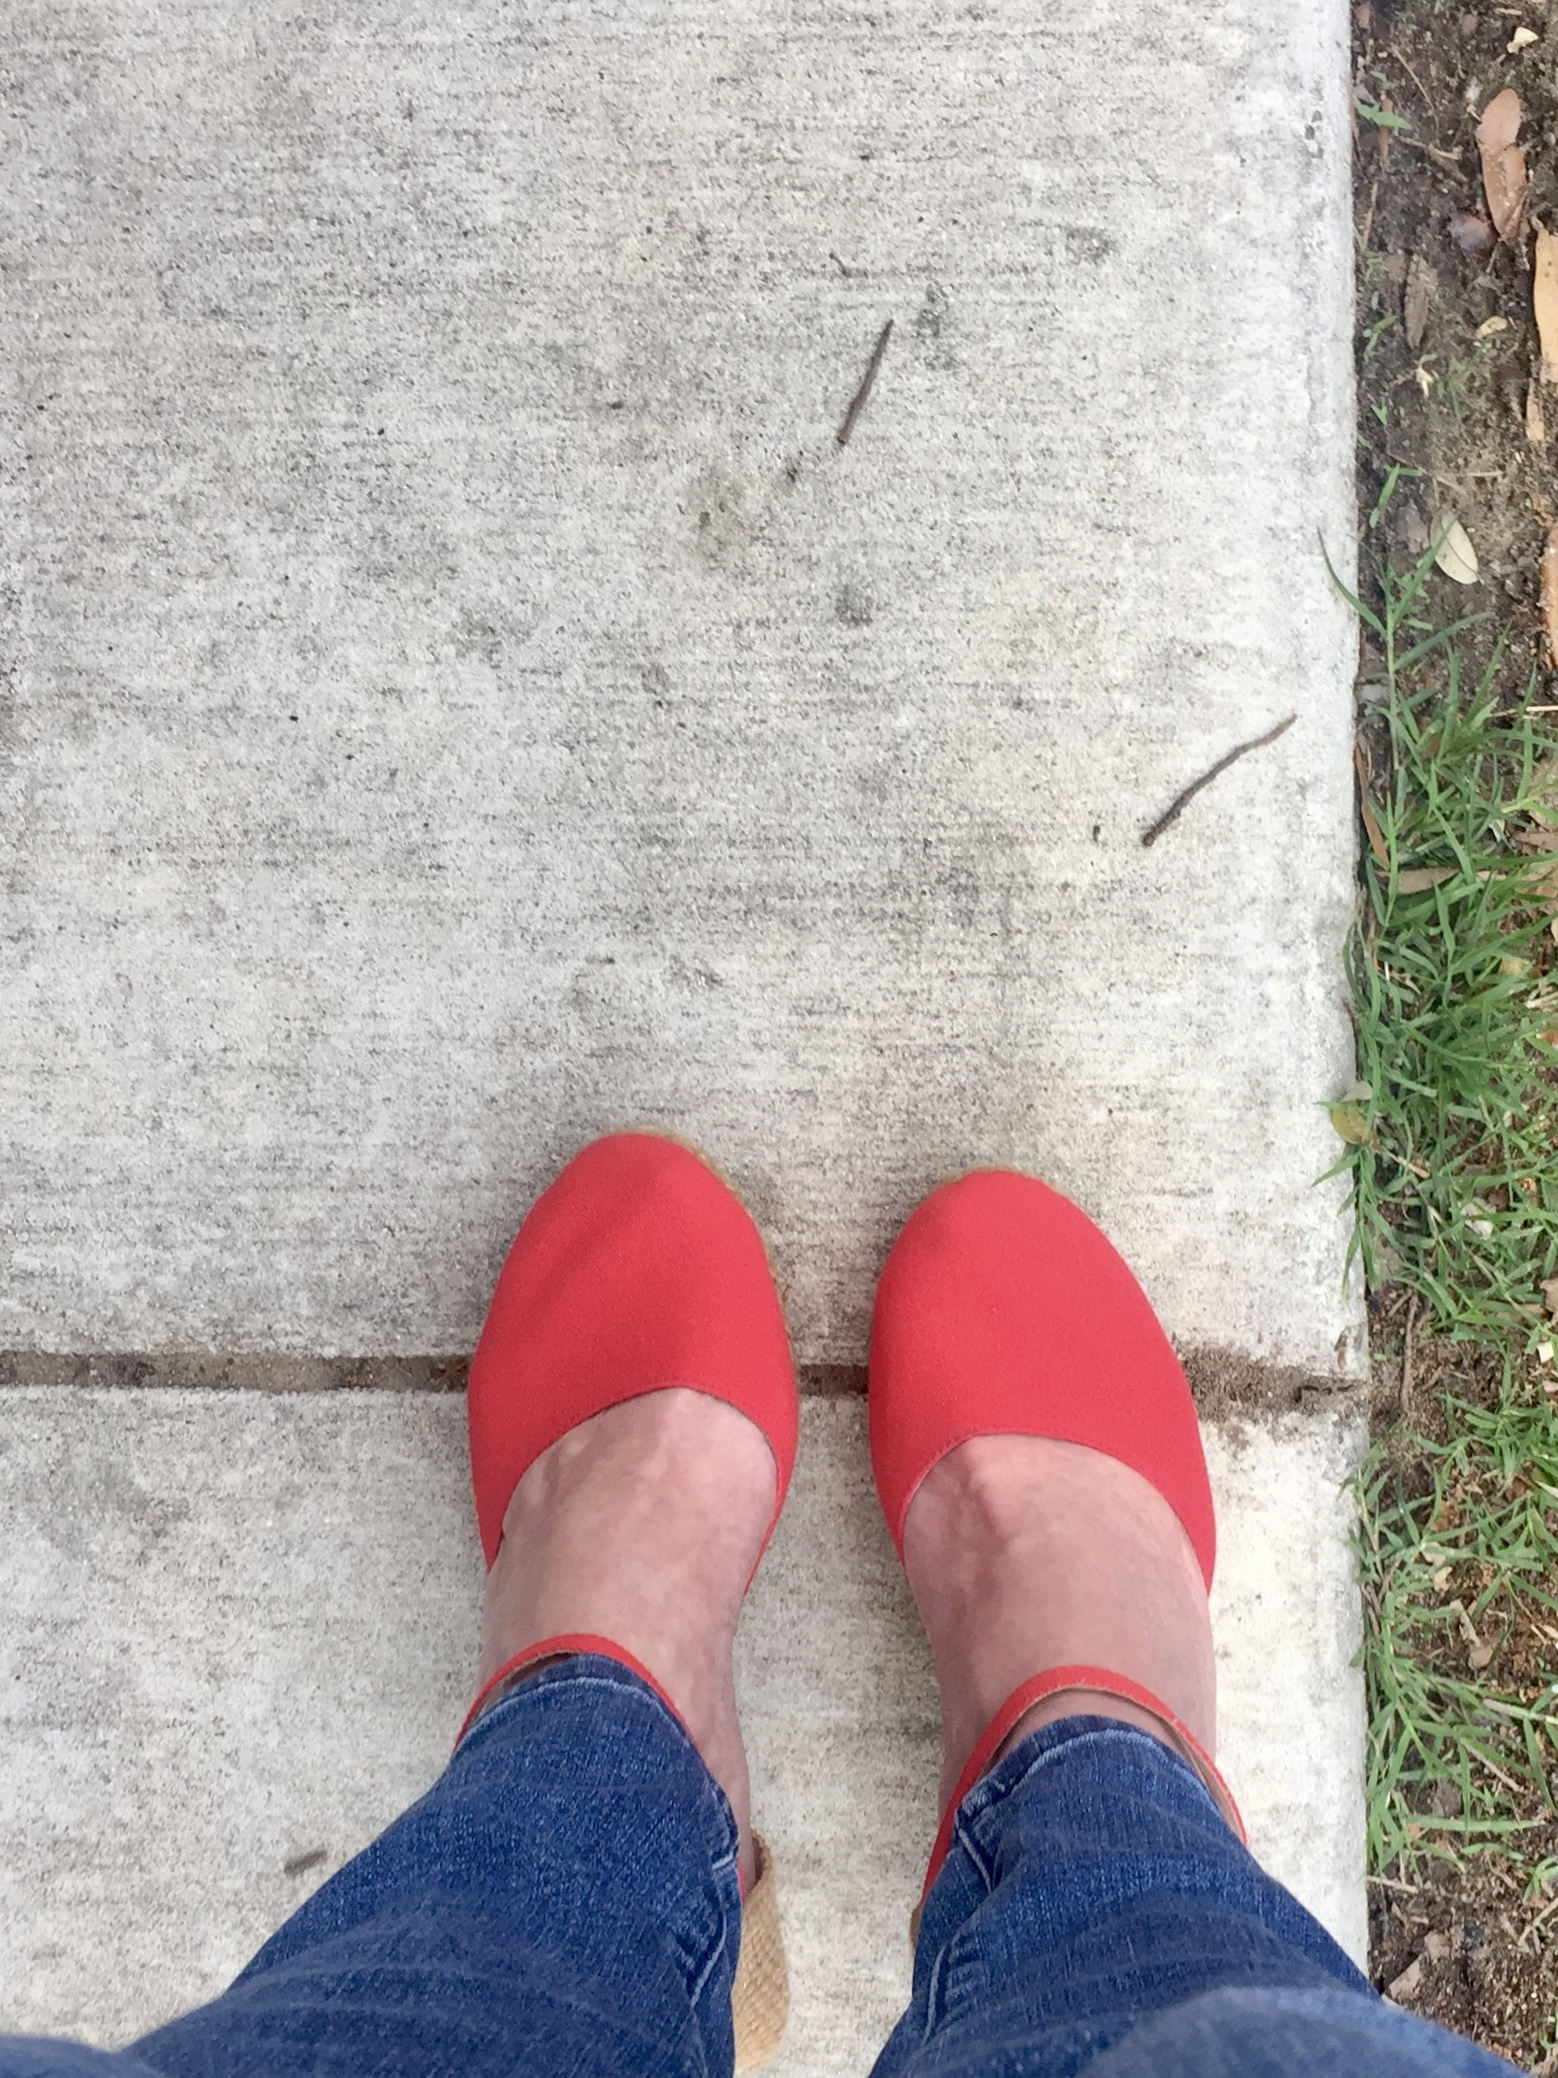 Red shoes  go everywhere, but they like New Orleans the best.  More news from NOLA tomorrow.